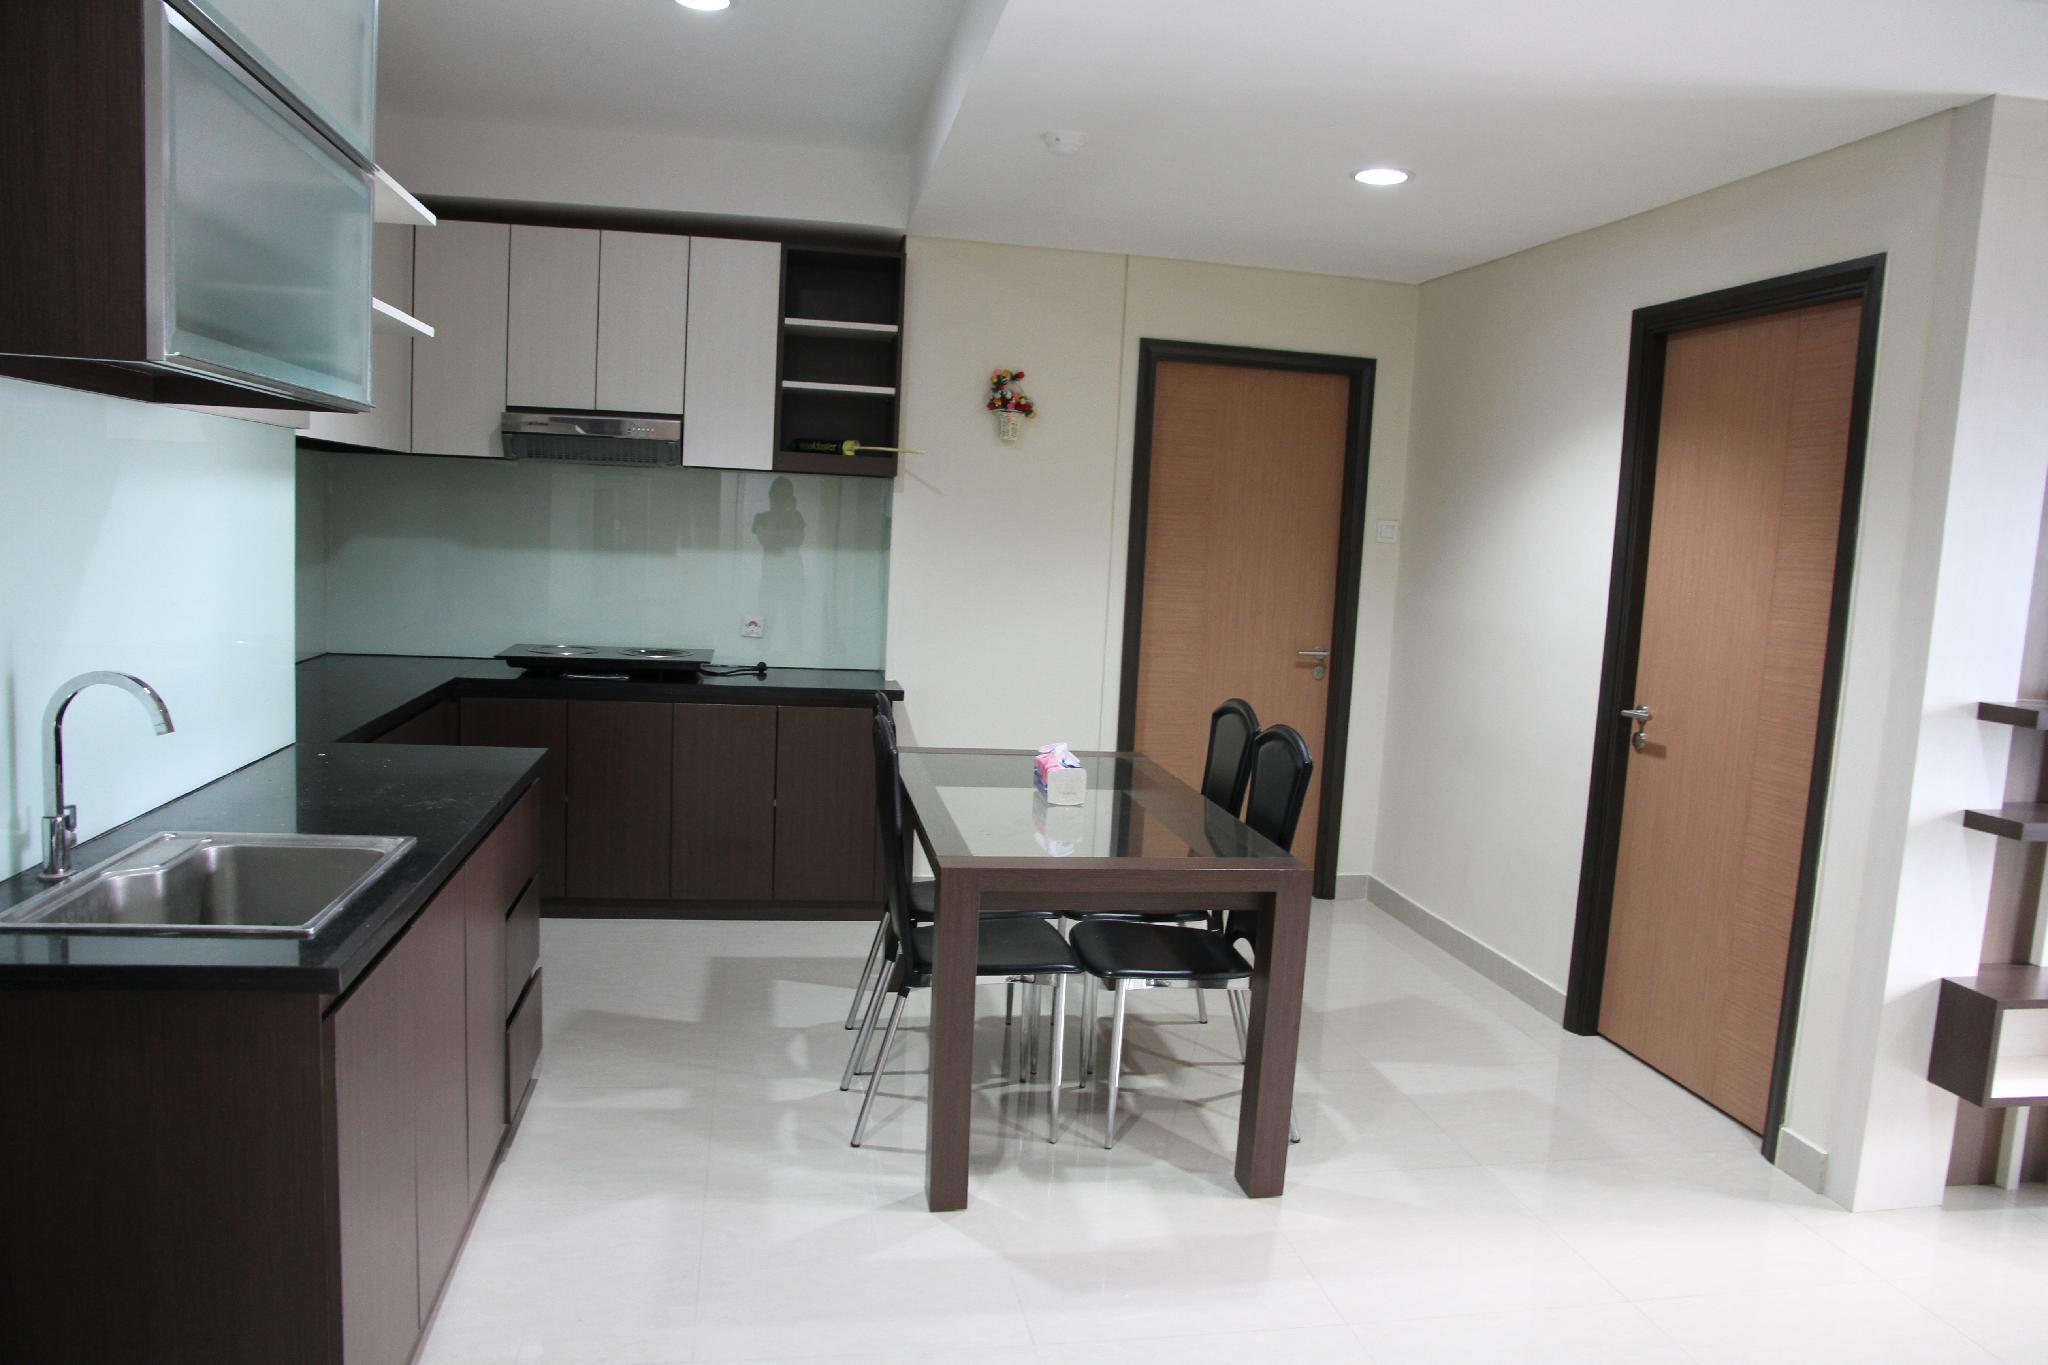 MG Suites Apartment 3Bedrooms,Spasious,Cozy,Clean